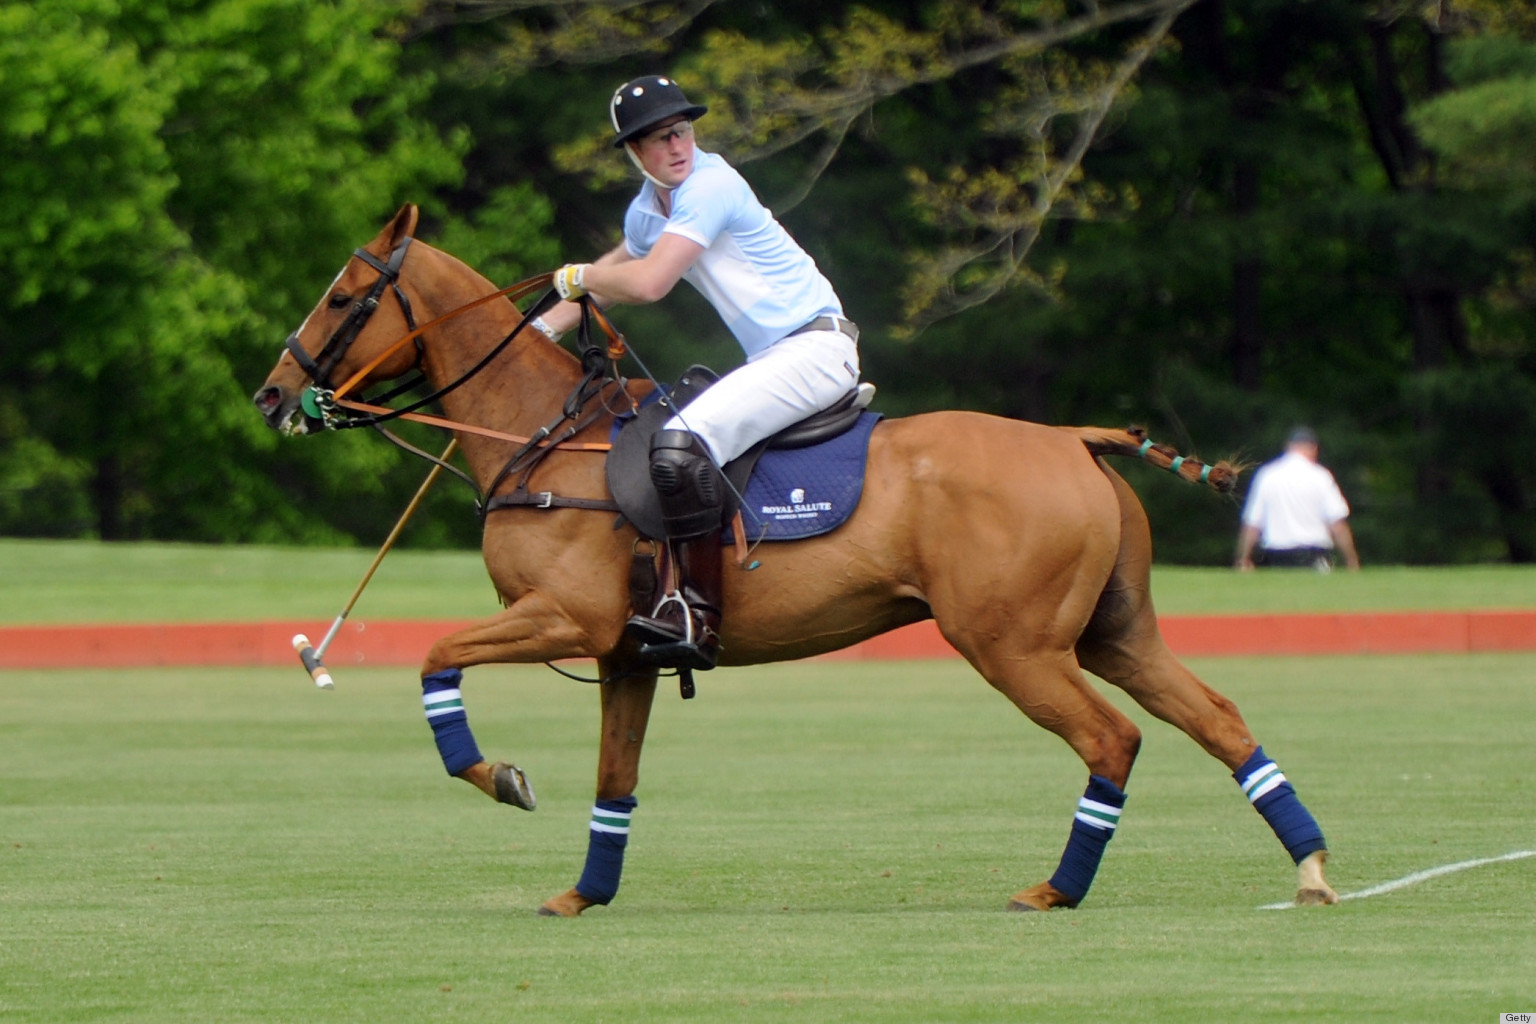 Hd Good Afternoon Wallpaper Prince Harry Polo Match In Connecticut Brings Out The